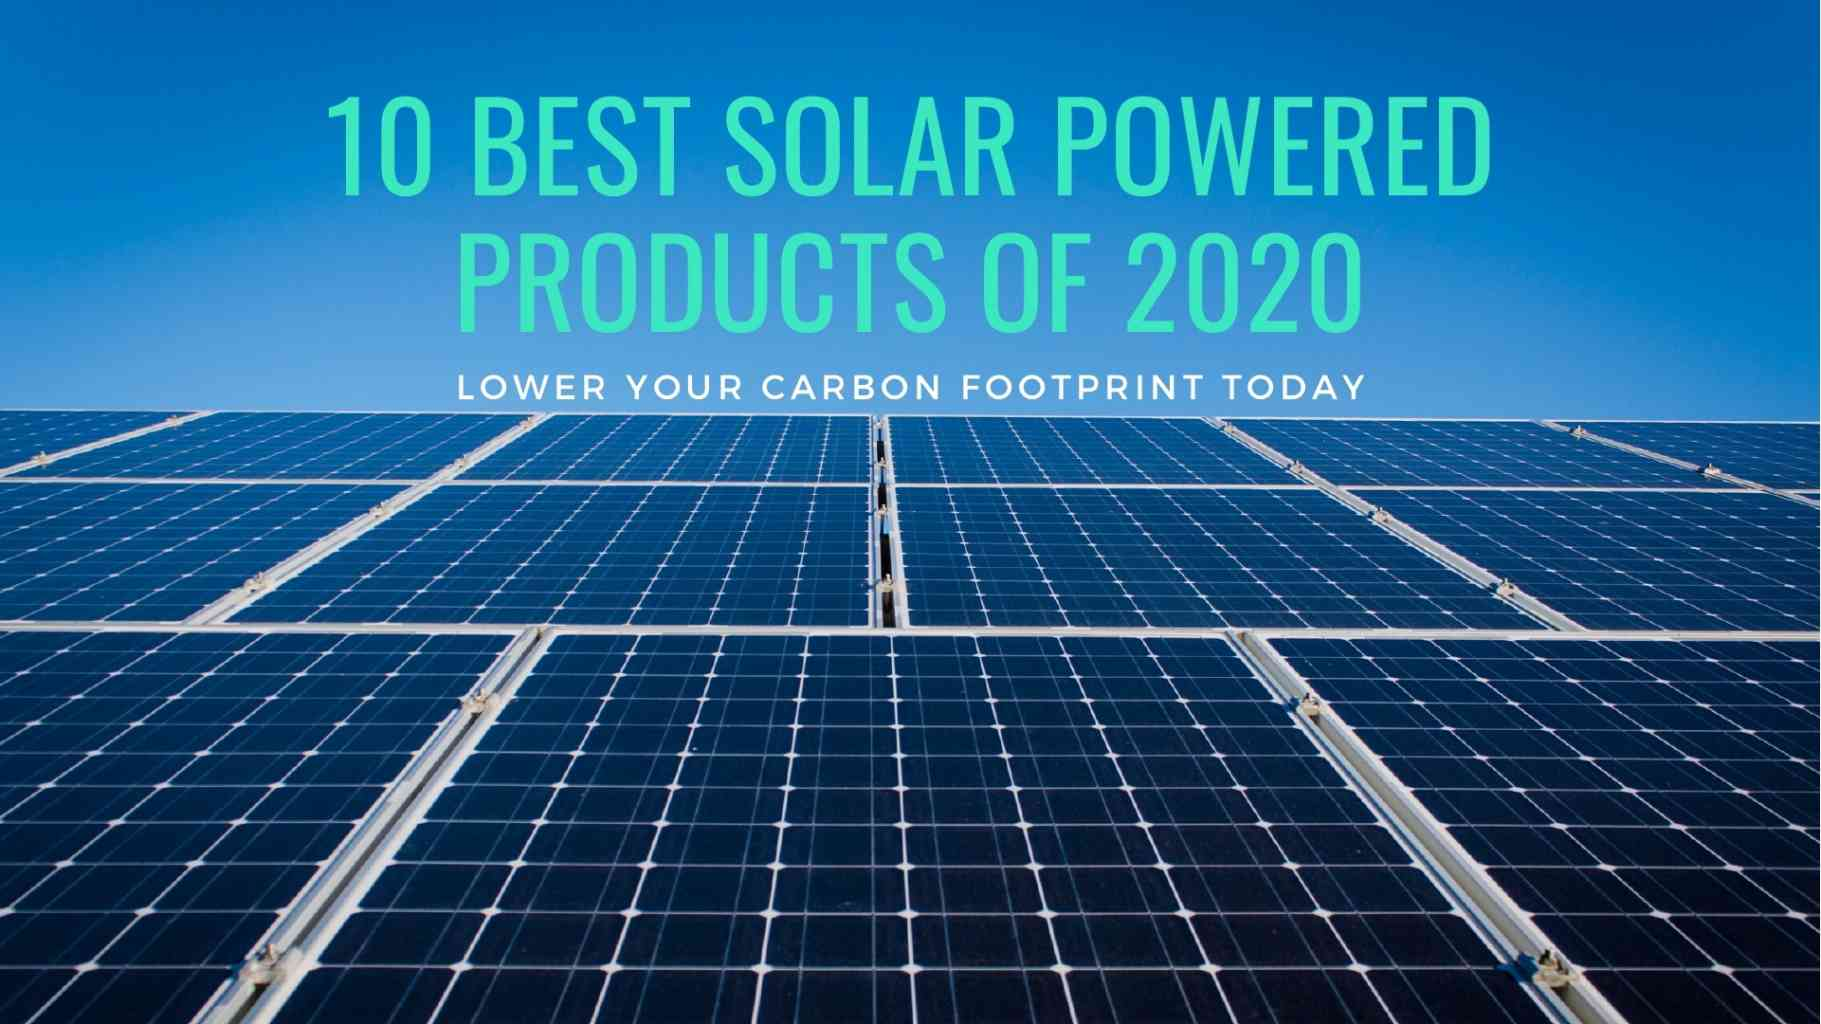 10 Best Solar Powered Products of 2020